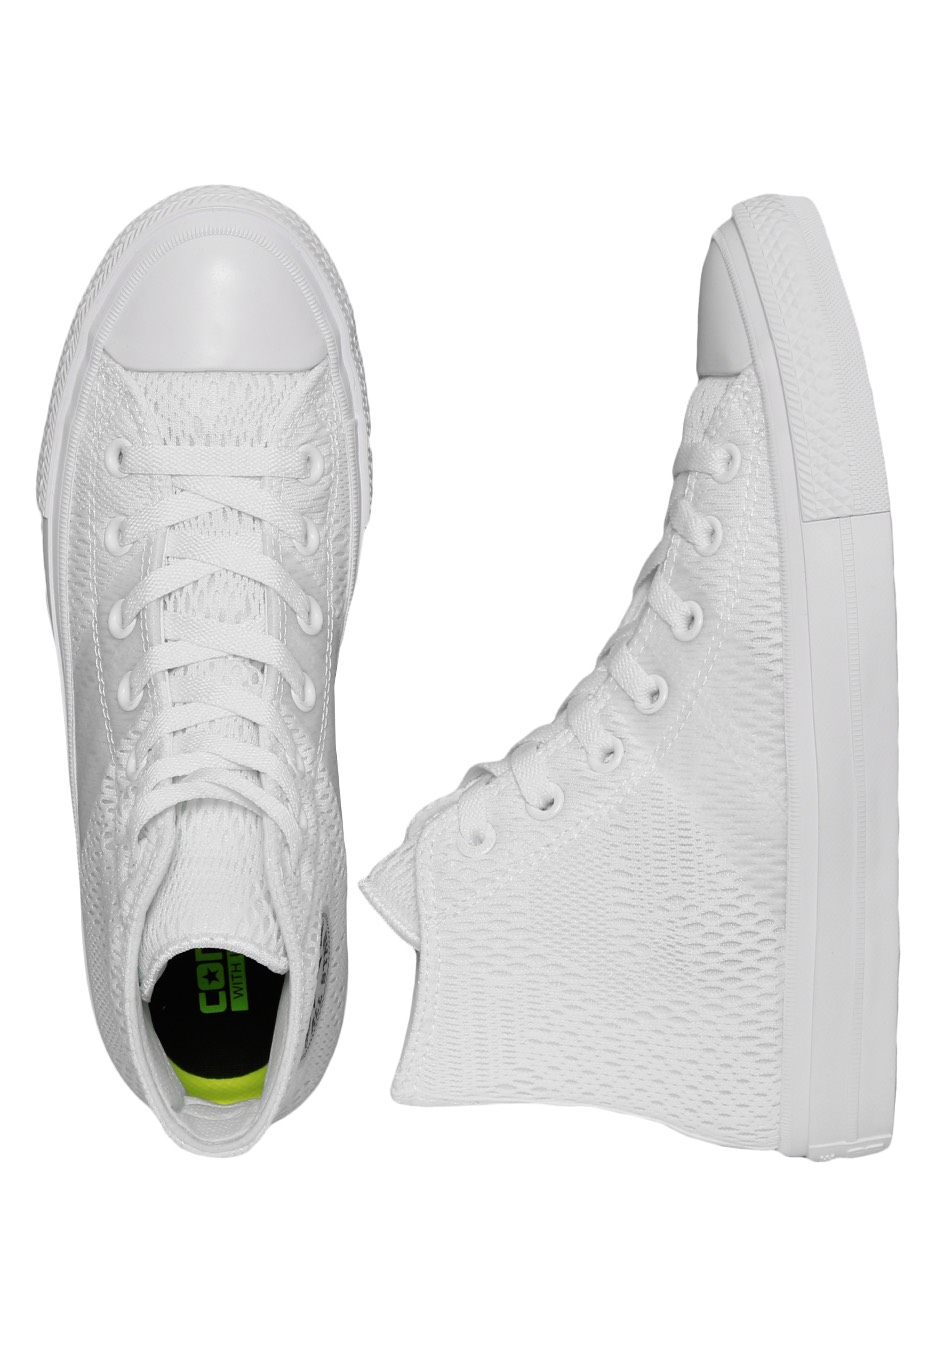 eadc0a80408d Converse - Chuck Taylor All Star II Engineered Mesh Optical White - Girl  Shoes - Impericon.com UK